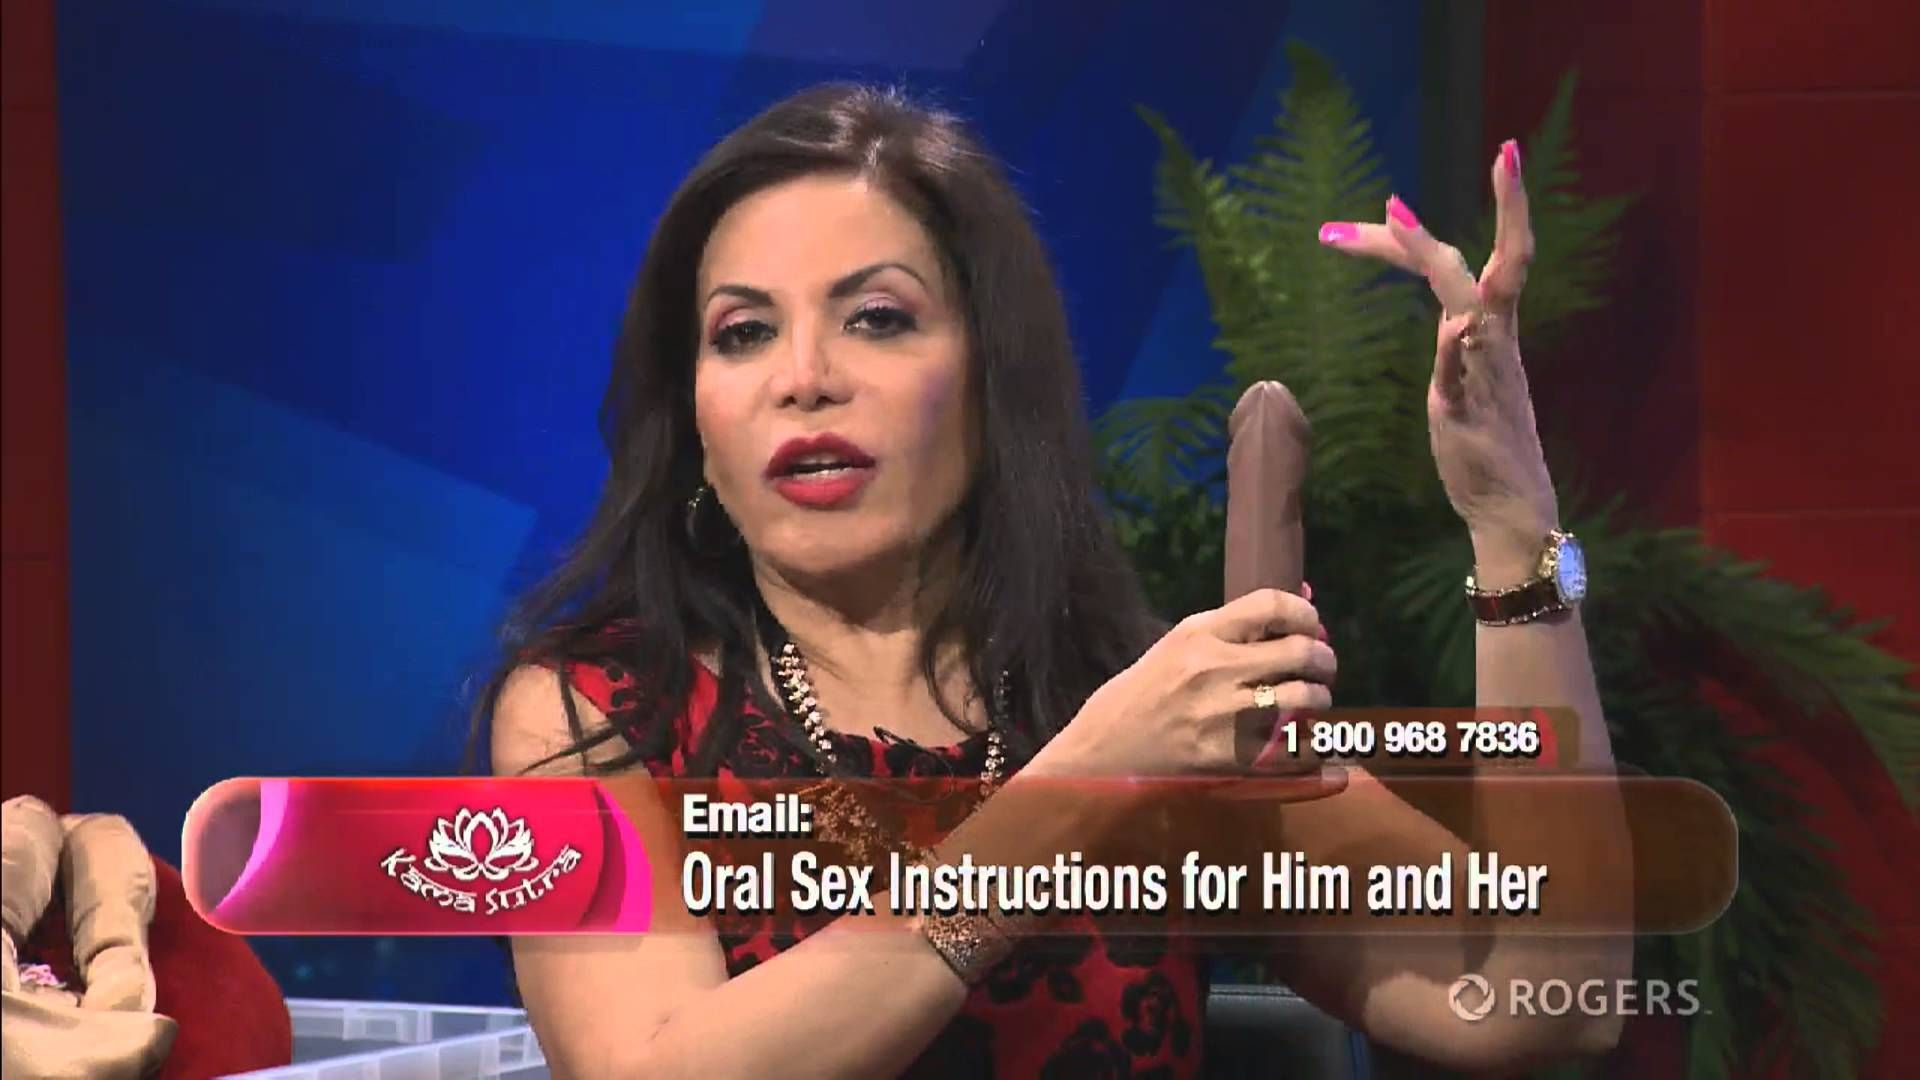 photos oral and instructions sex